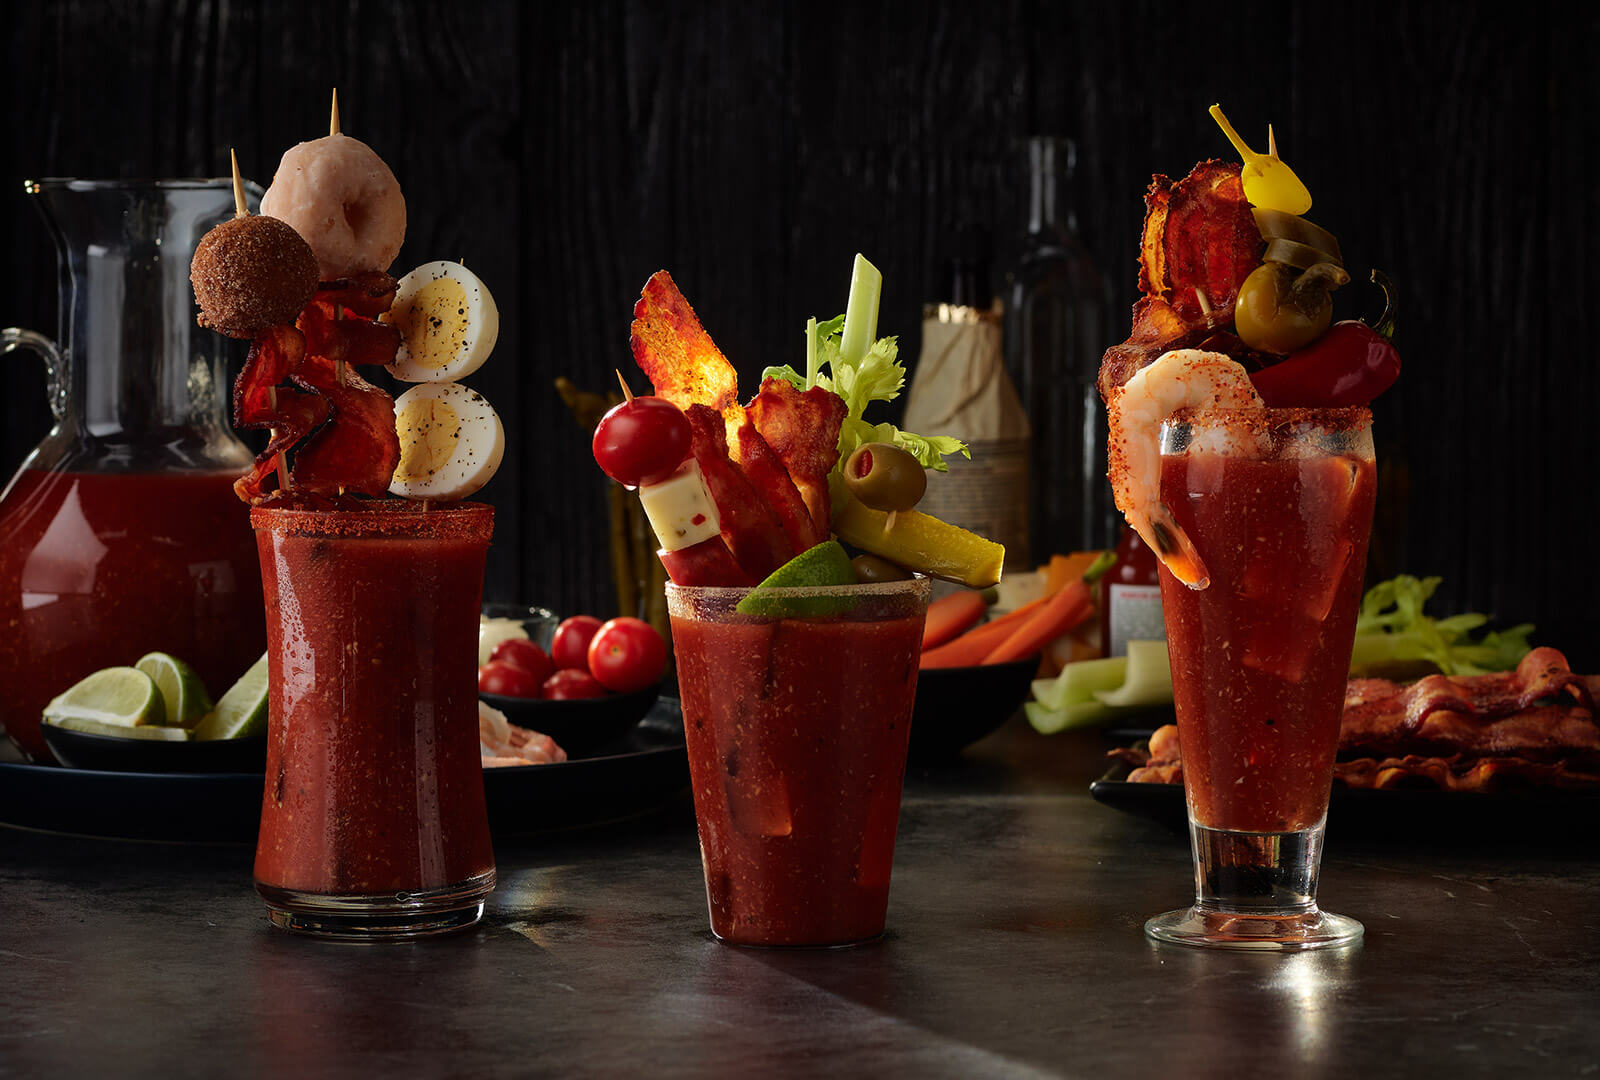 Three Bloody Mary cocktails on a tabletop